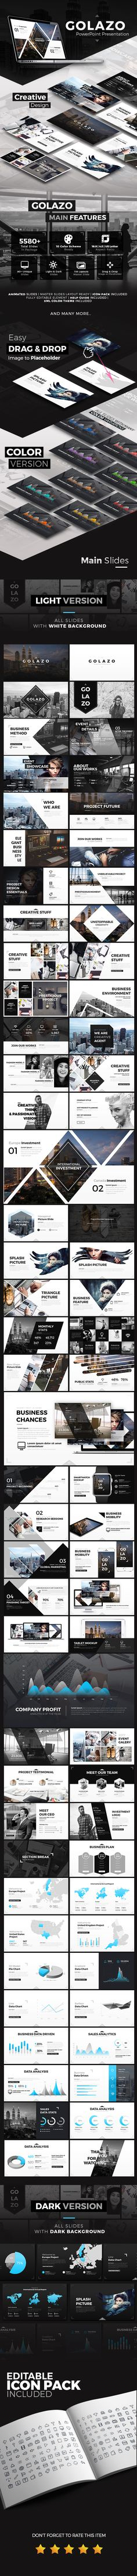 Golazo PowerPoint Presentation - Business PowerPoint Templates Download here: https://graphicriver.net/item/golazo-powerpoint-presentation/17844625?ref=classicdesignp